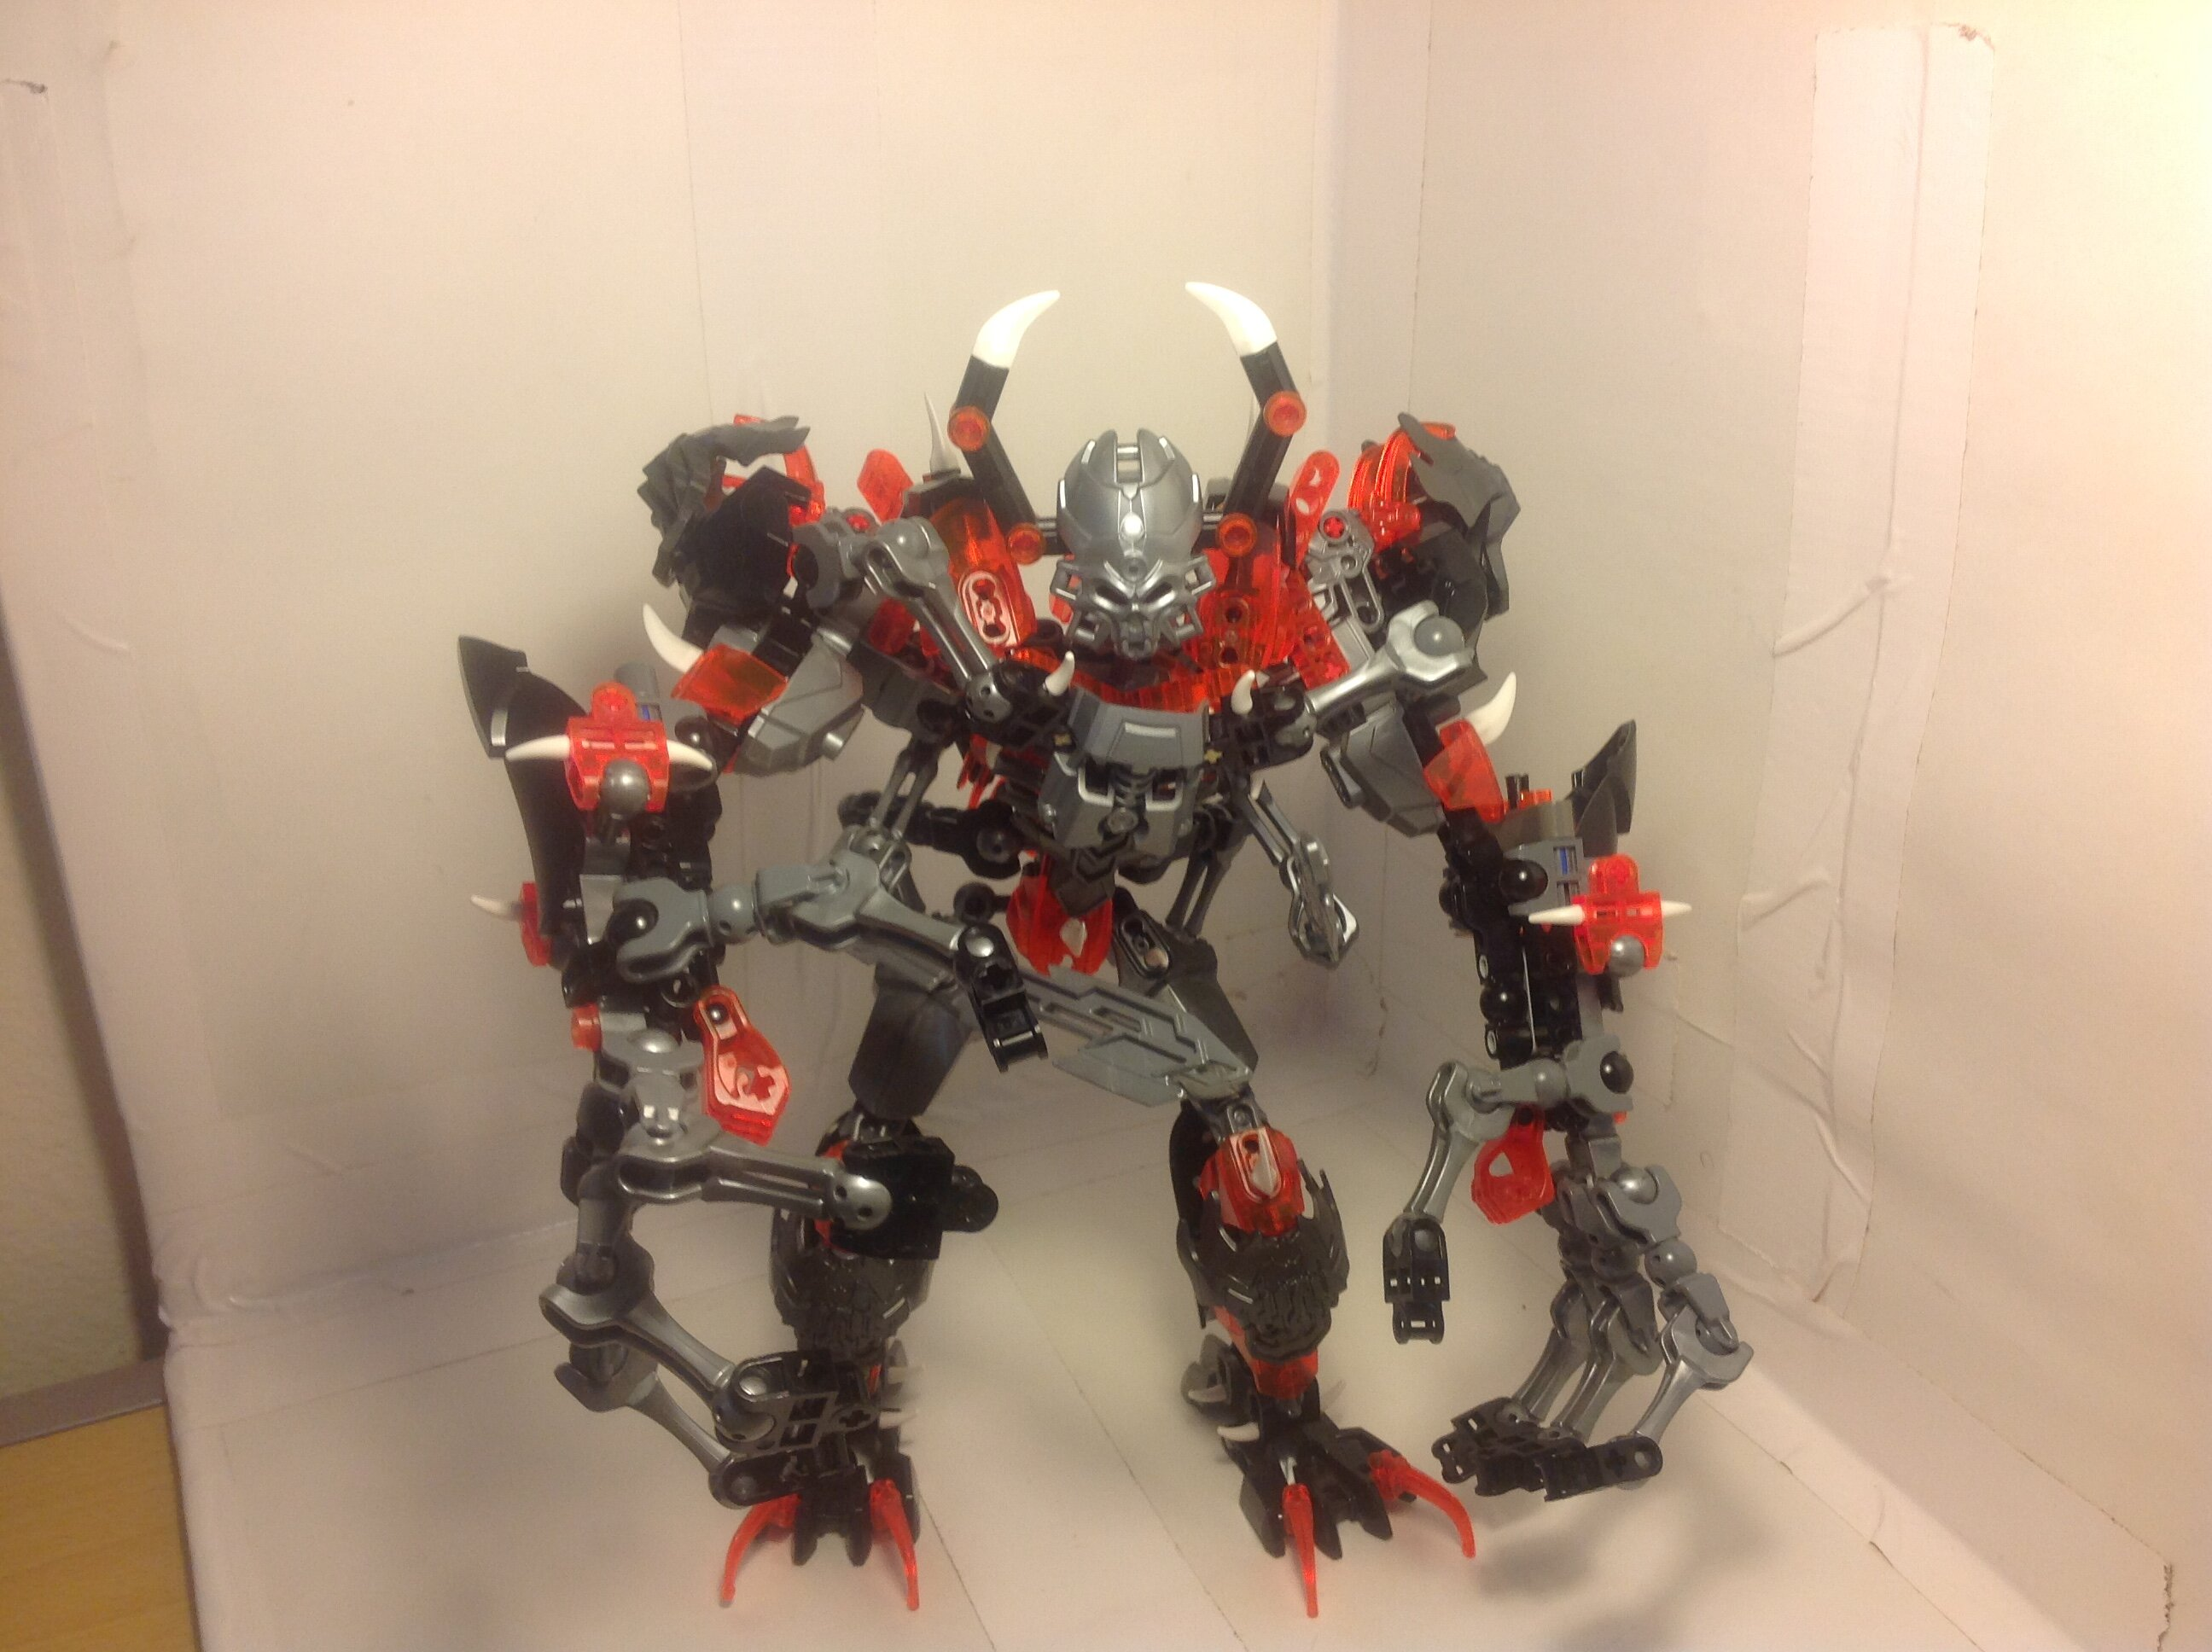 Bionicle Skull Titan - Lego Creations - The TTV Message Boards